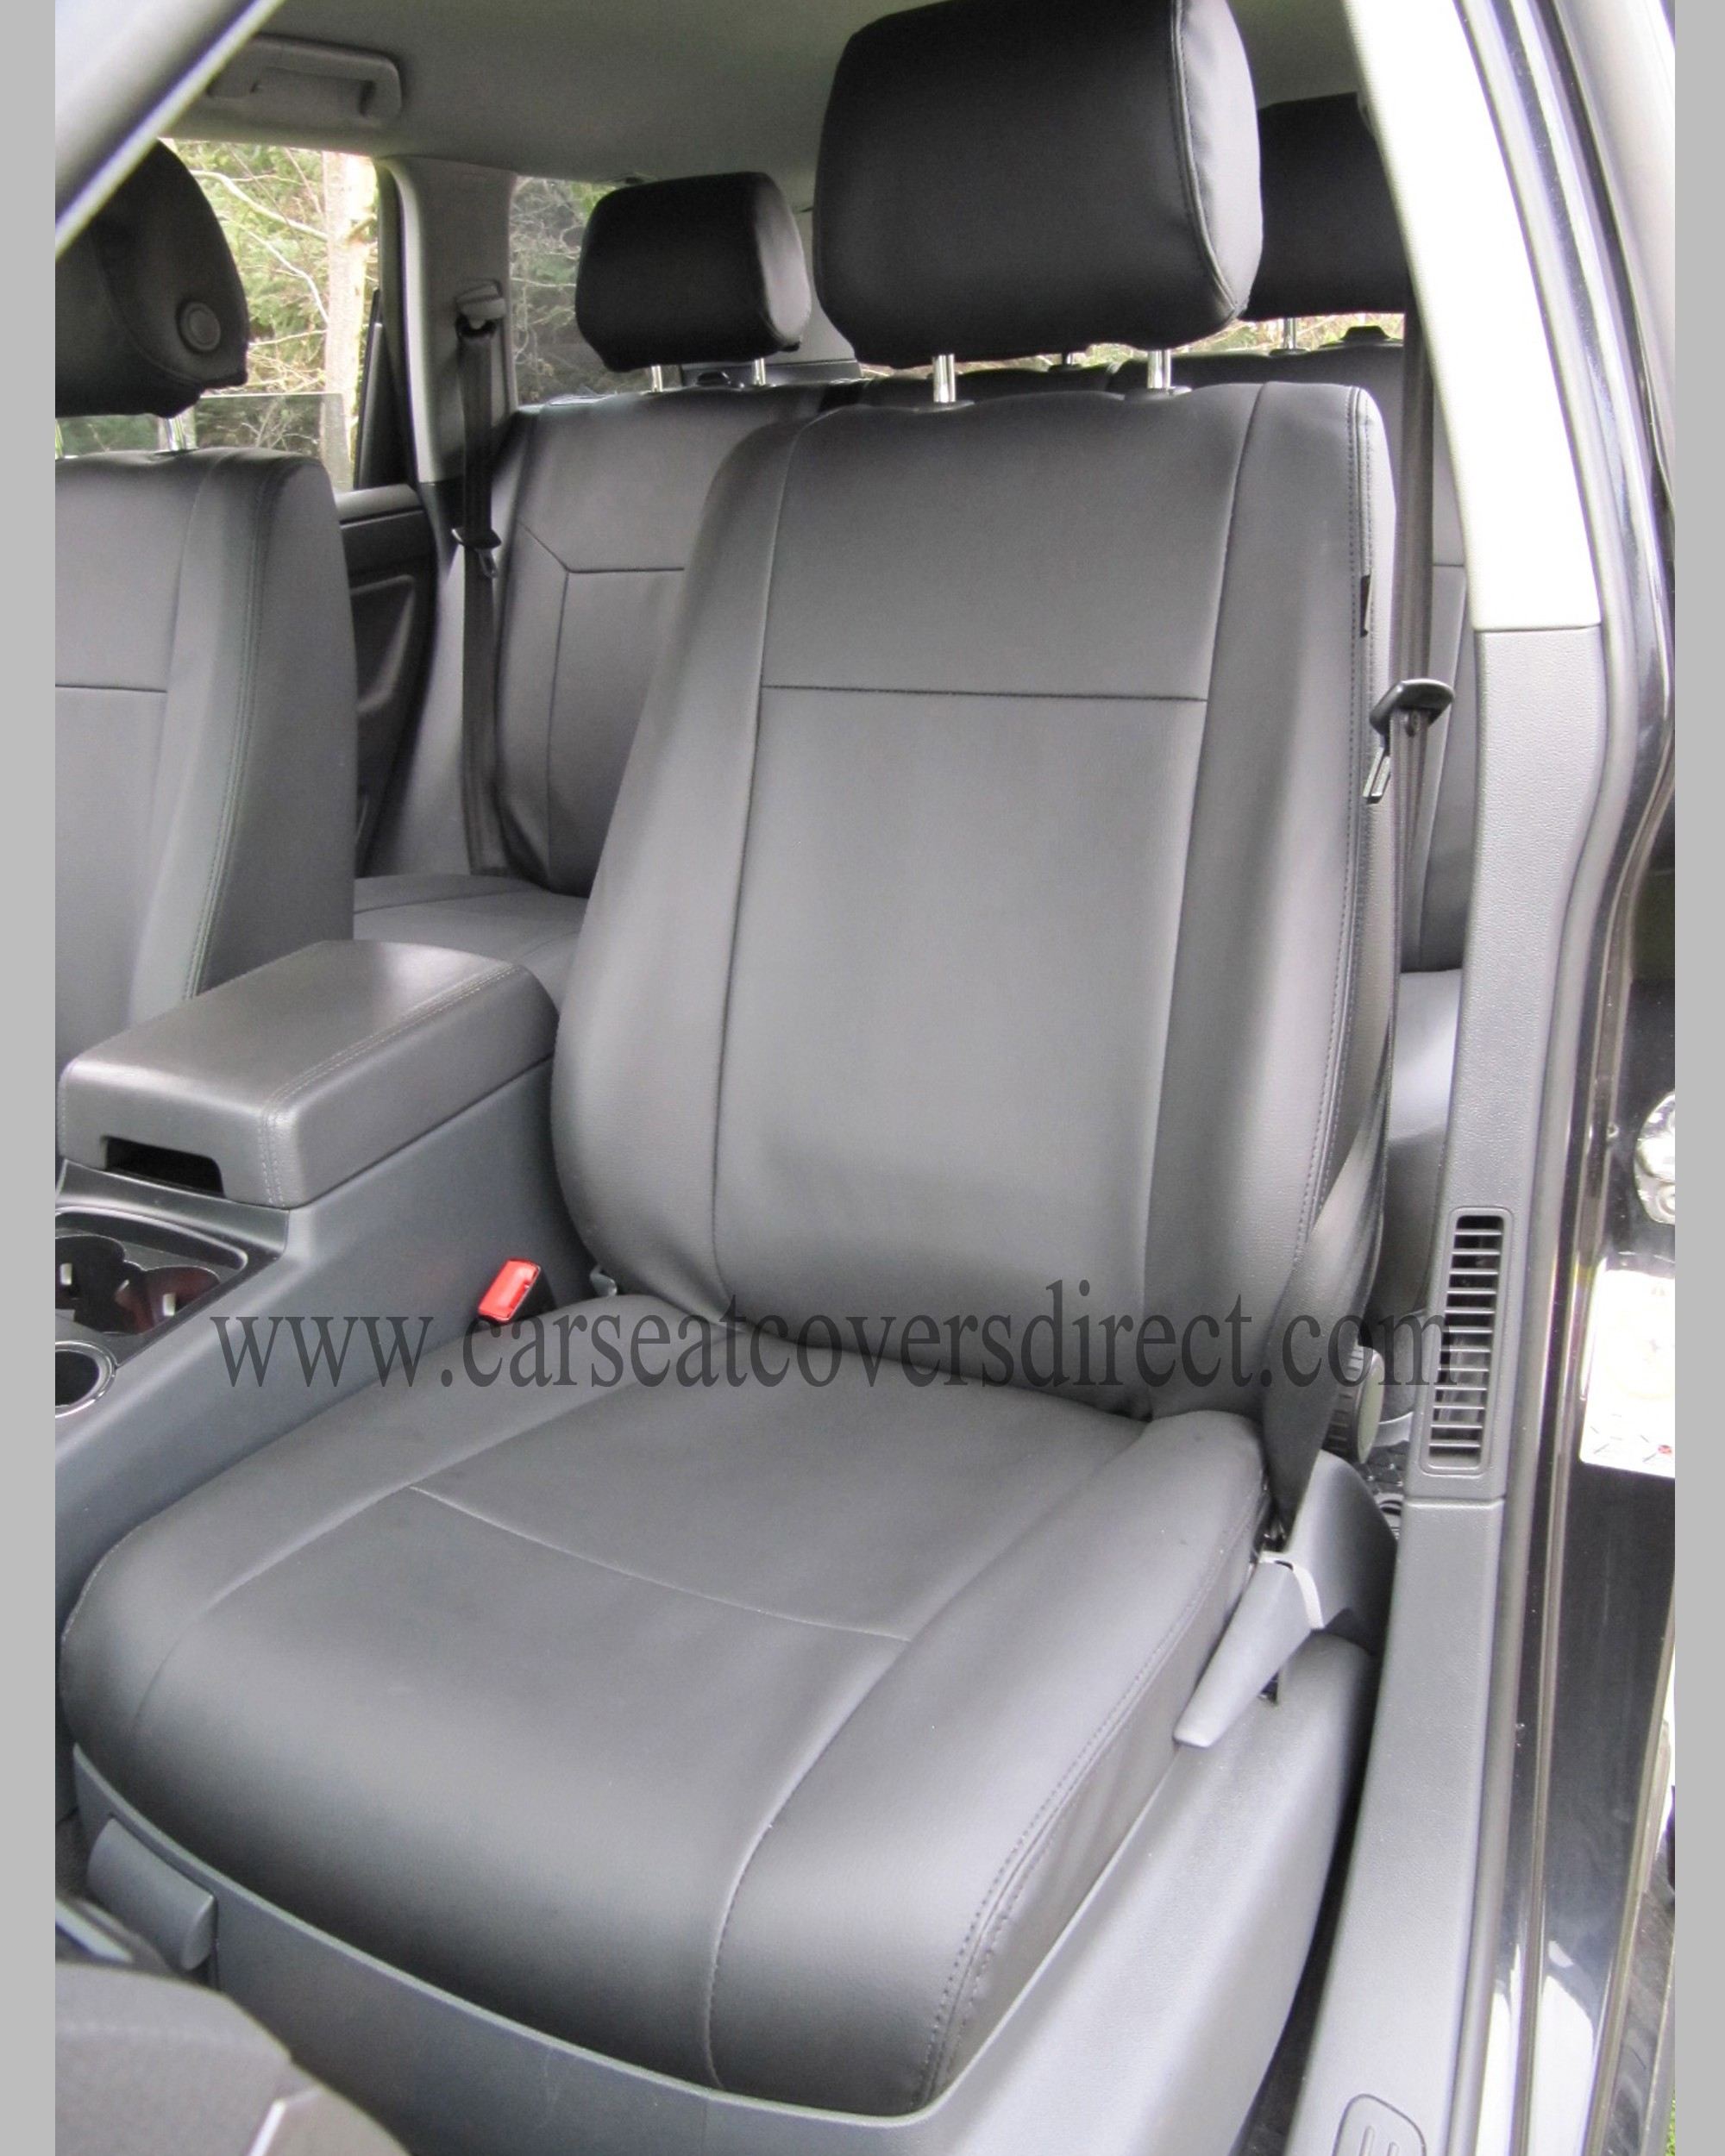 VOLKSWAGEN VW TOUAREG Seat Covers